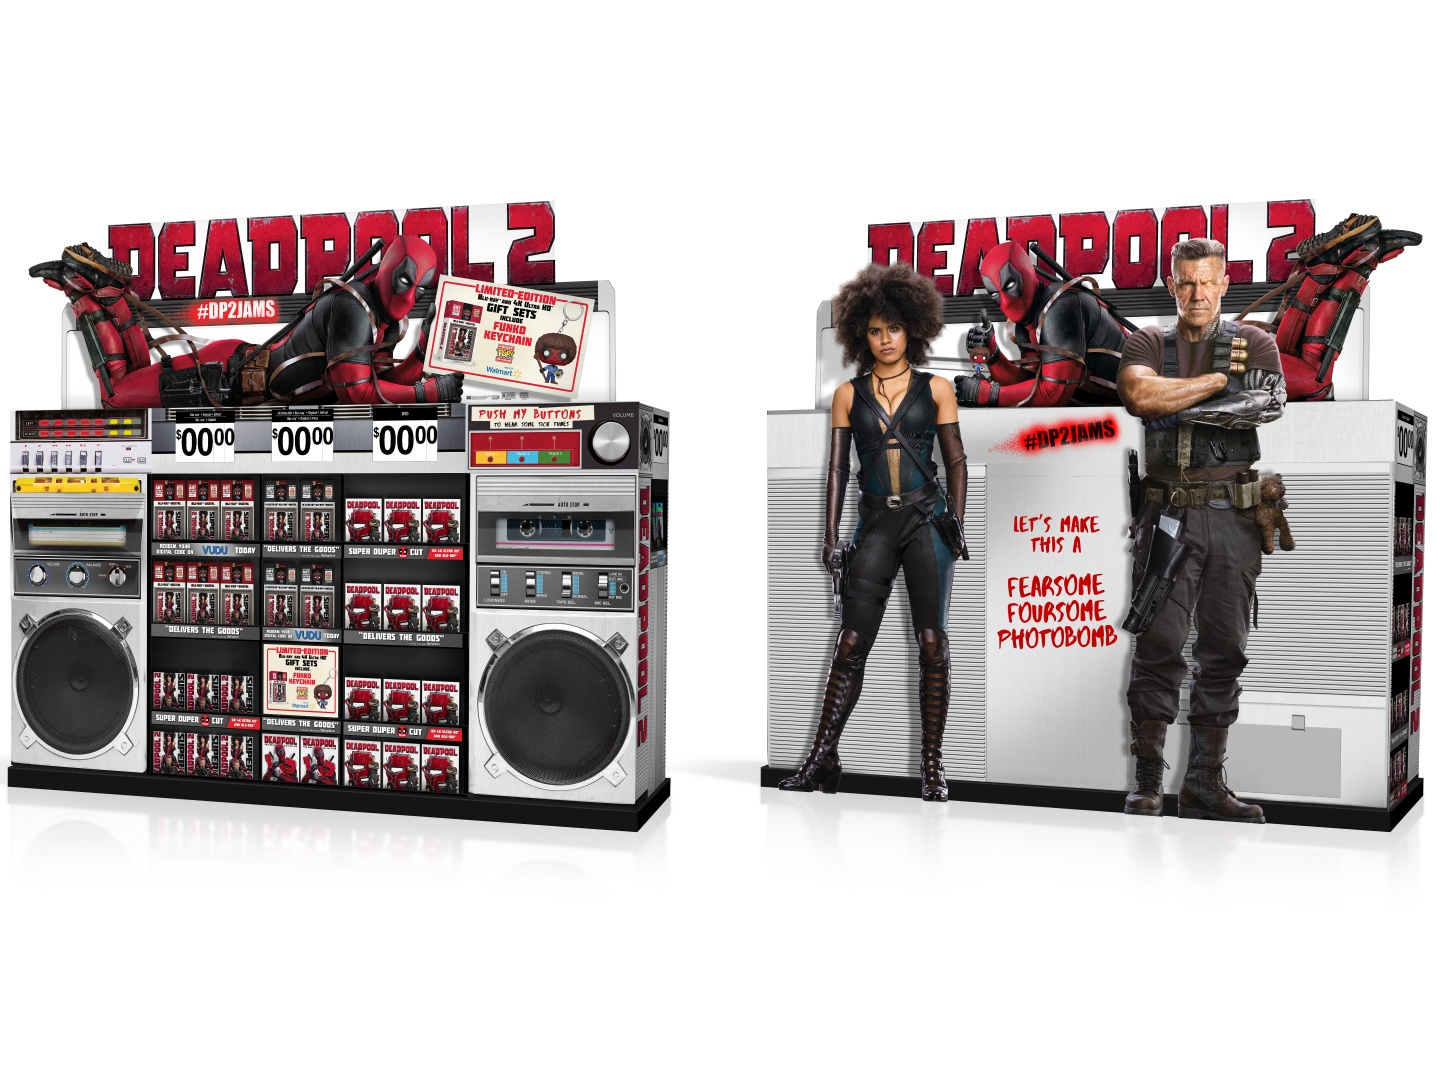 Image for DEADPOOL 2 Home Entertainment Display: WM WOW Boombox